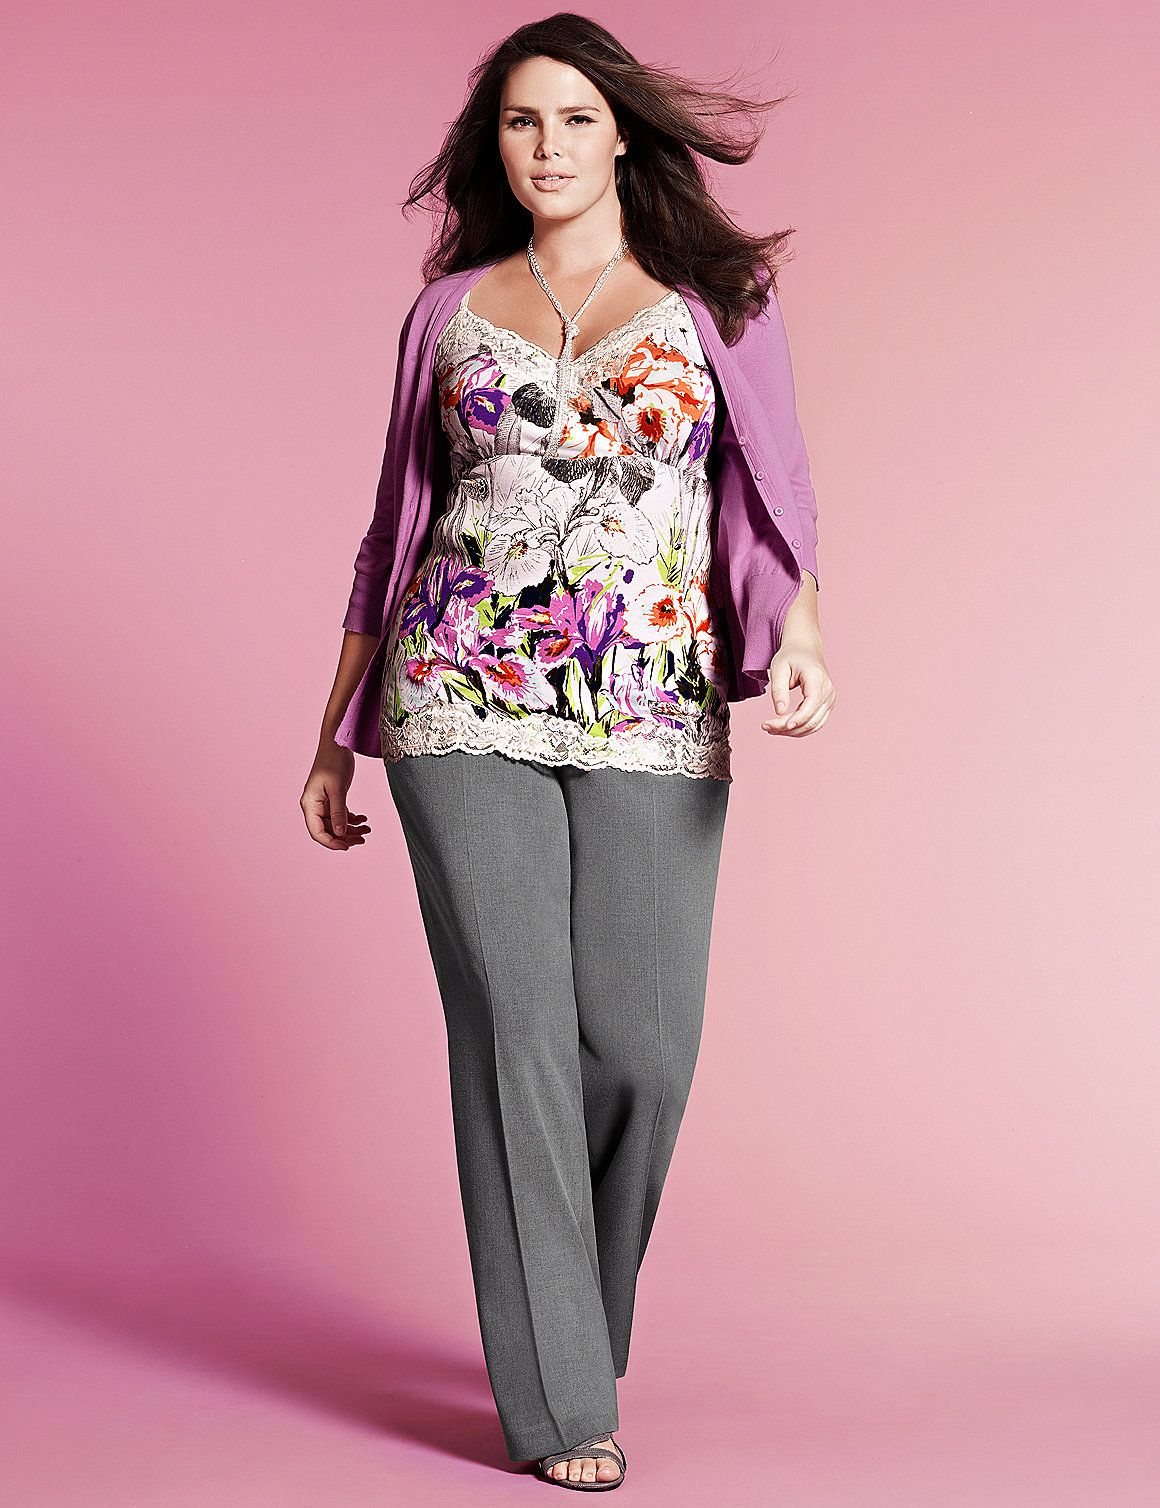 Possible Interview Outfit Fashion Moda Work Advice Curvy